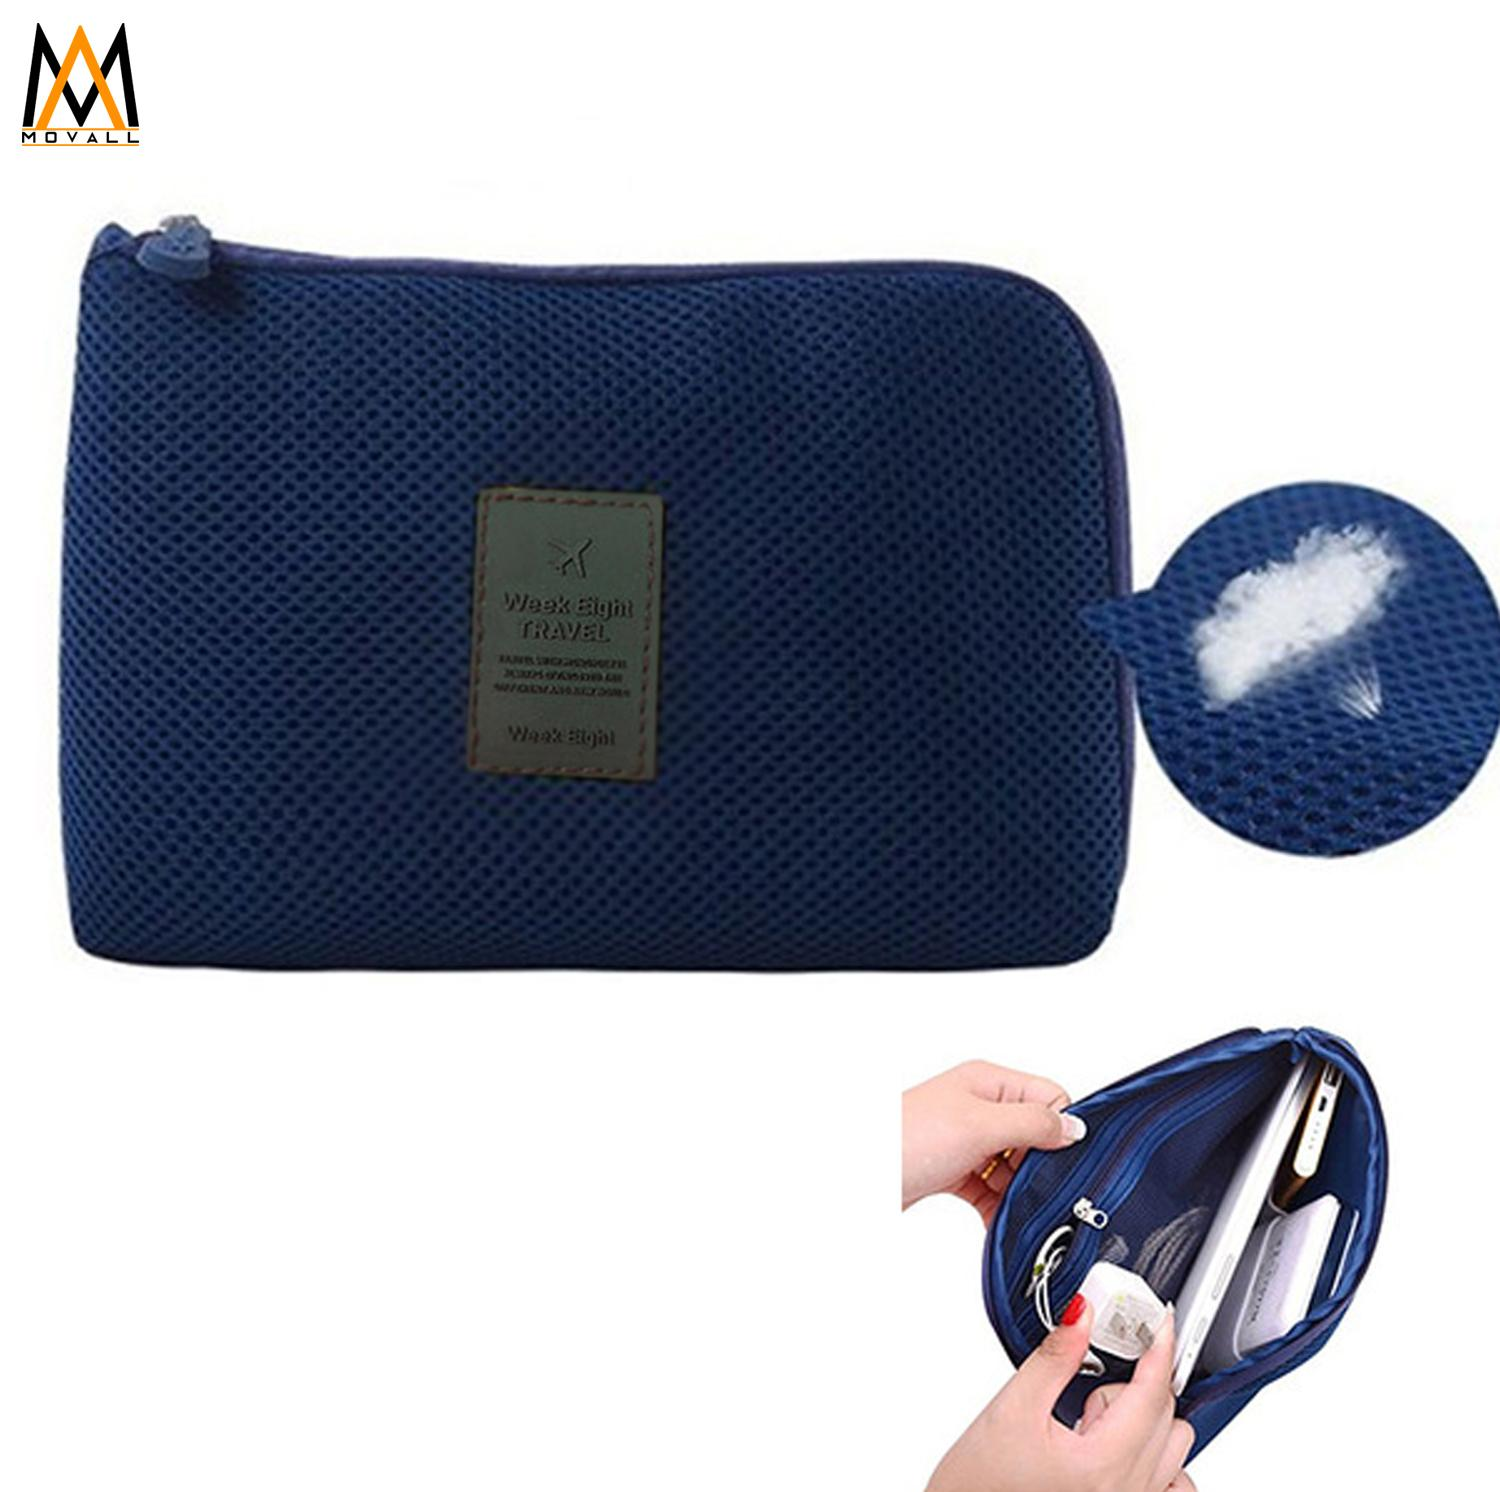 c5359f42a7 Travel Gadget Organizer Cable cord Charger Pouch (Navy Blue)